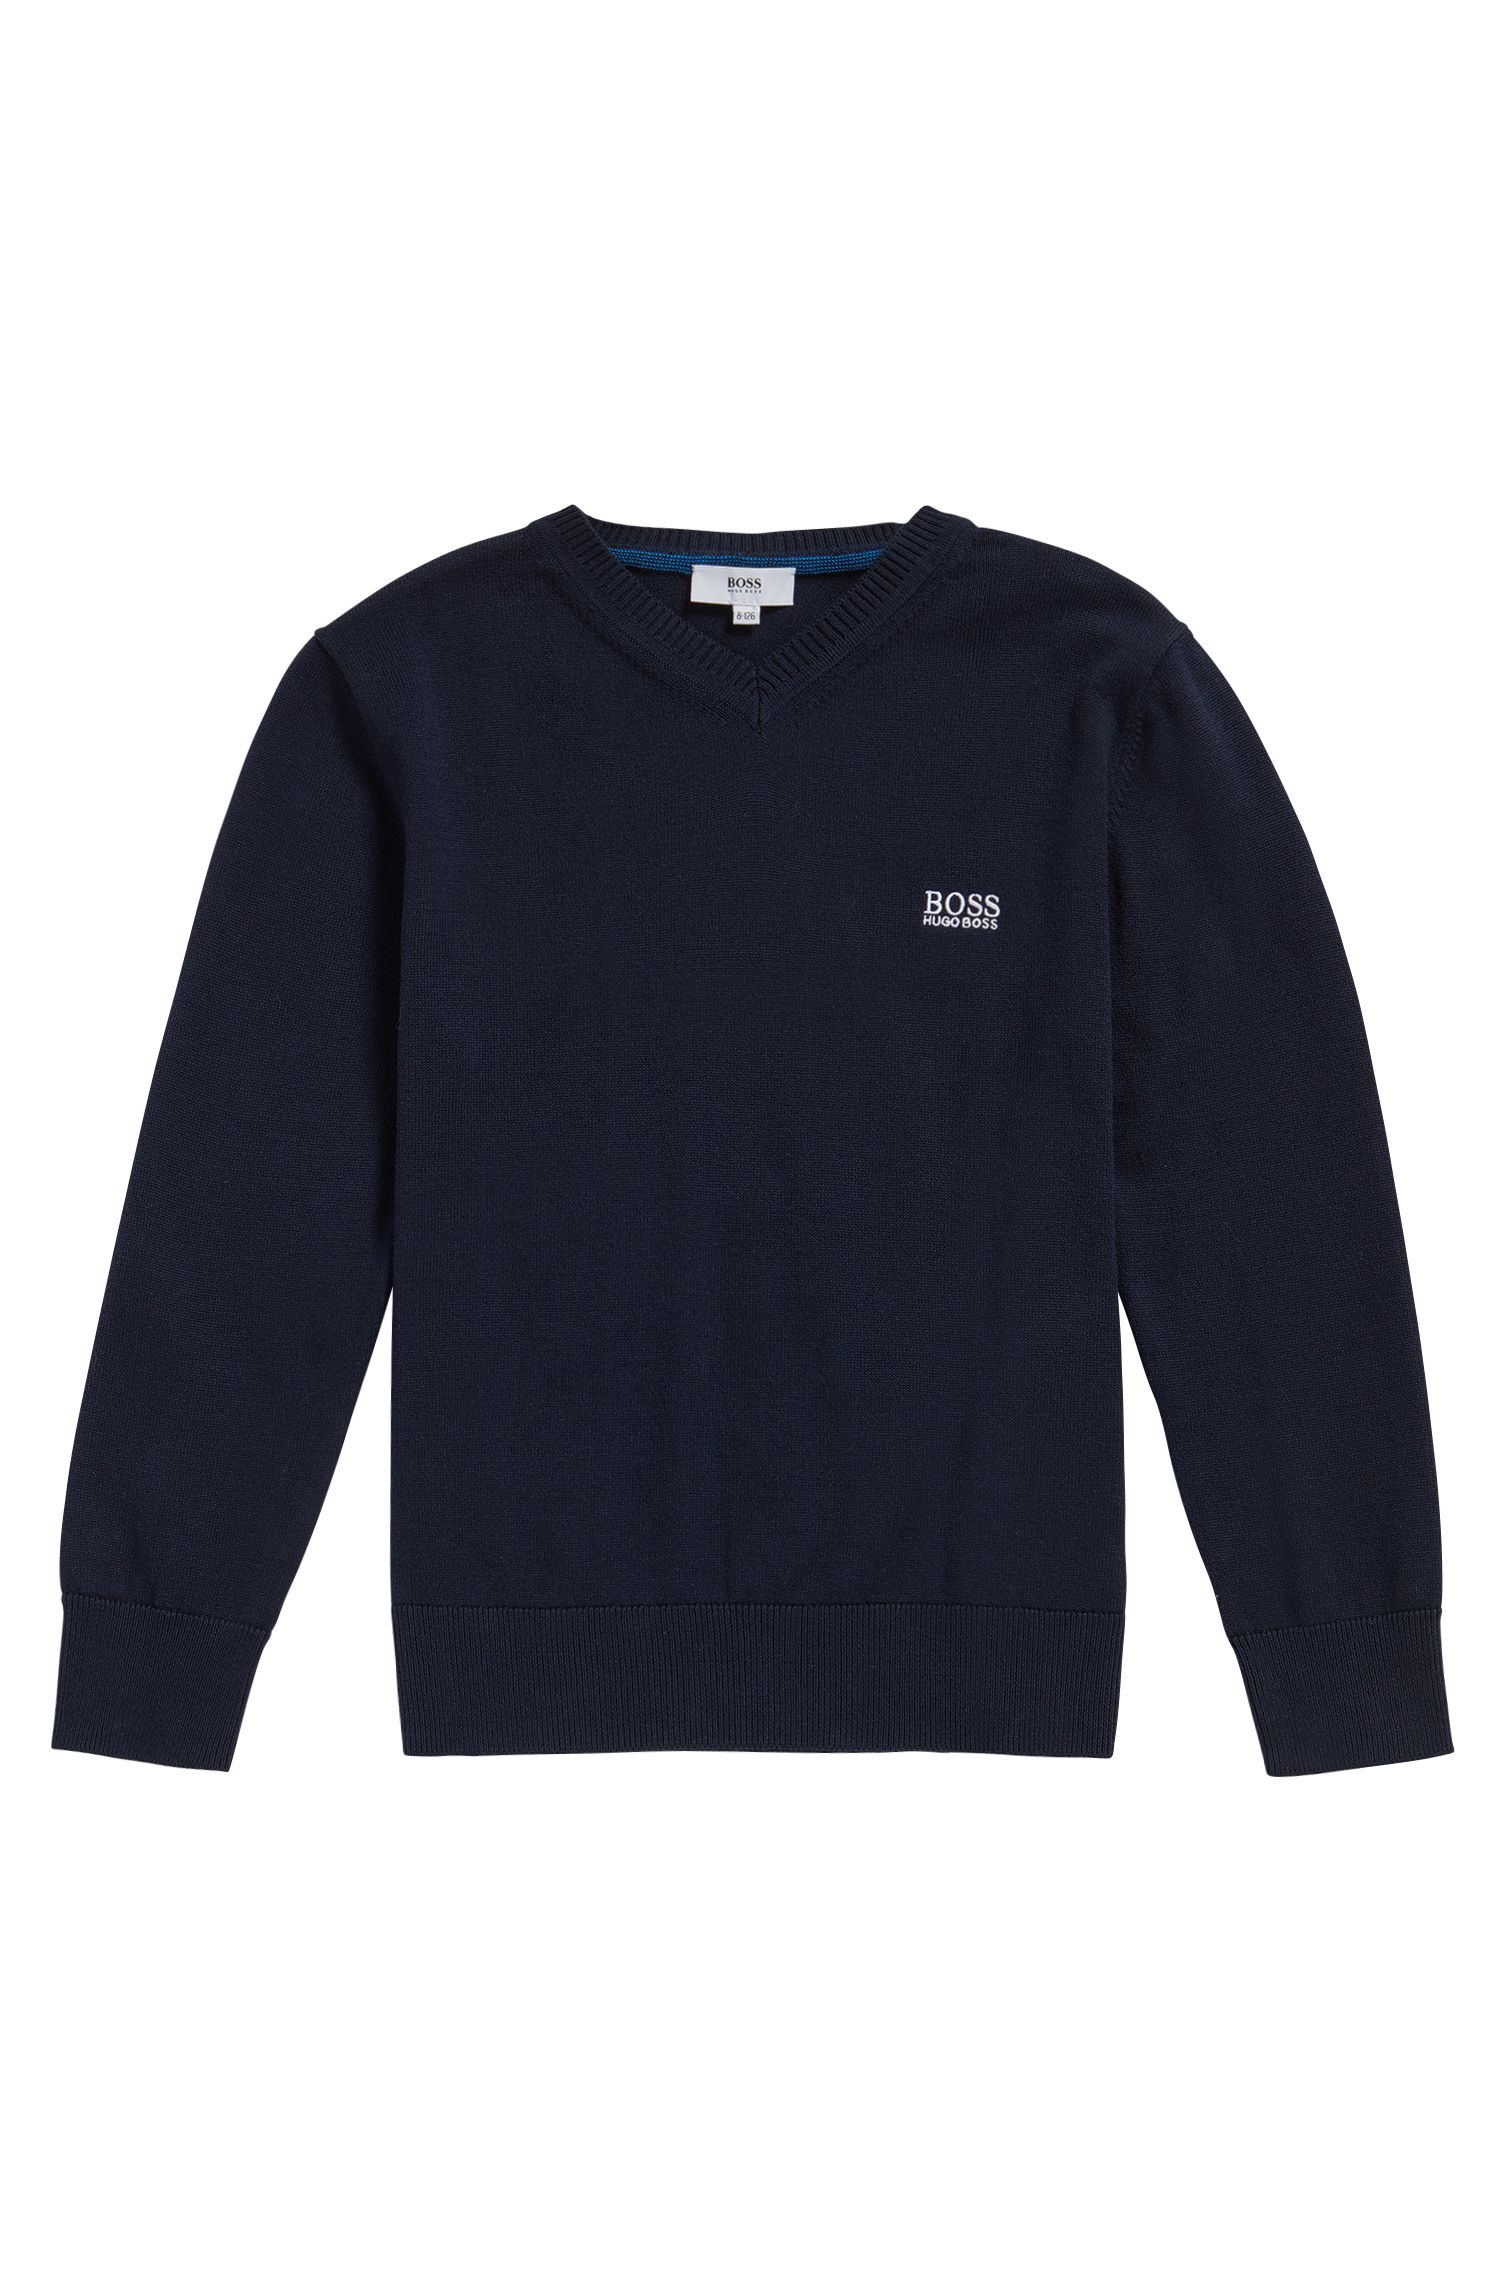 Kids' sweater in cotton with V-neck: 'J25V55'